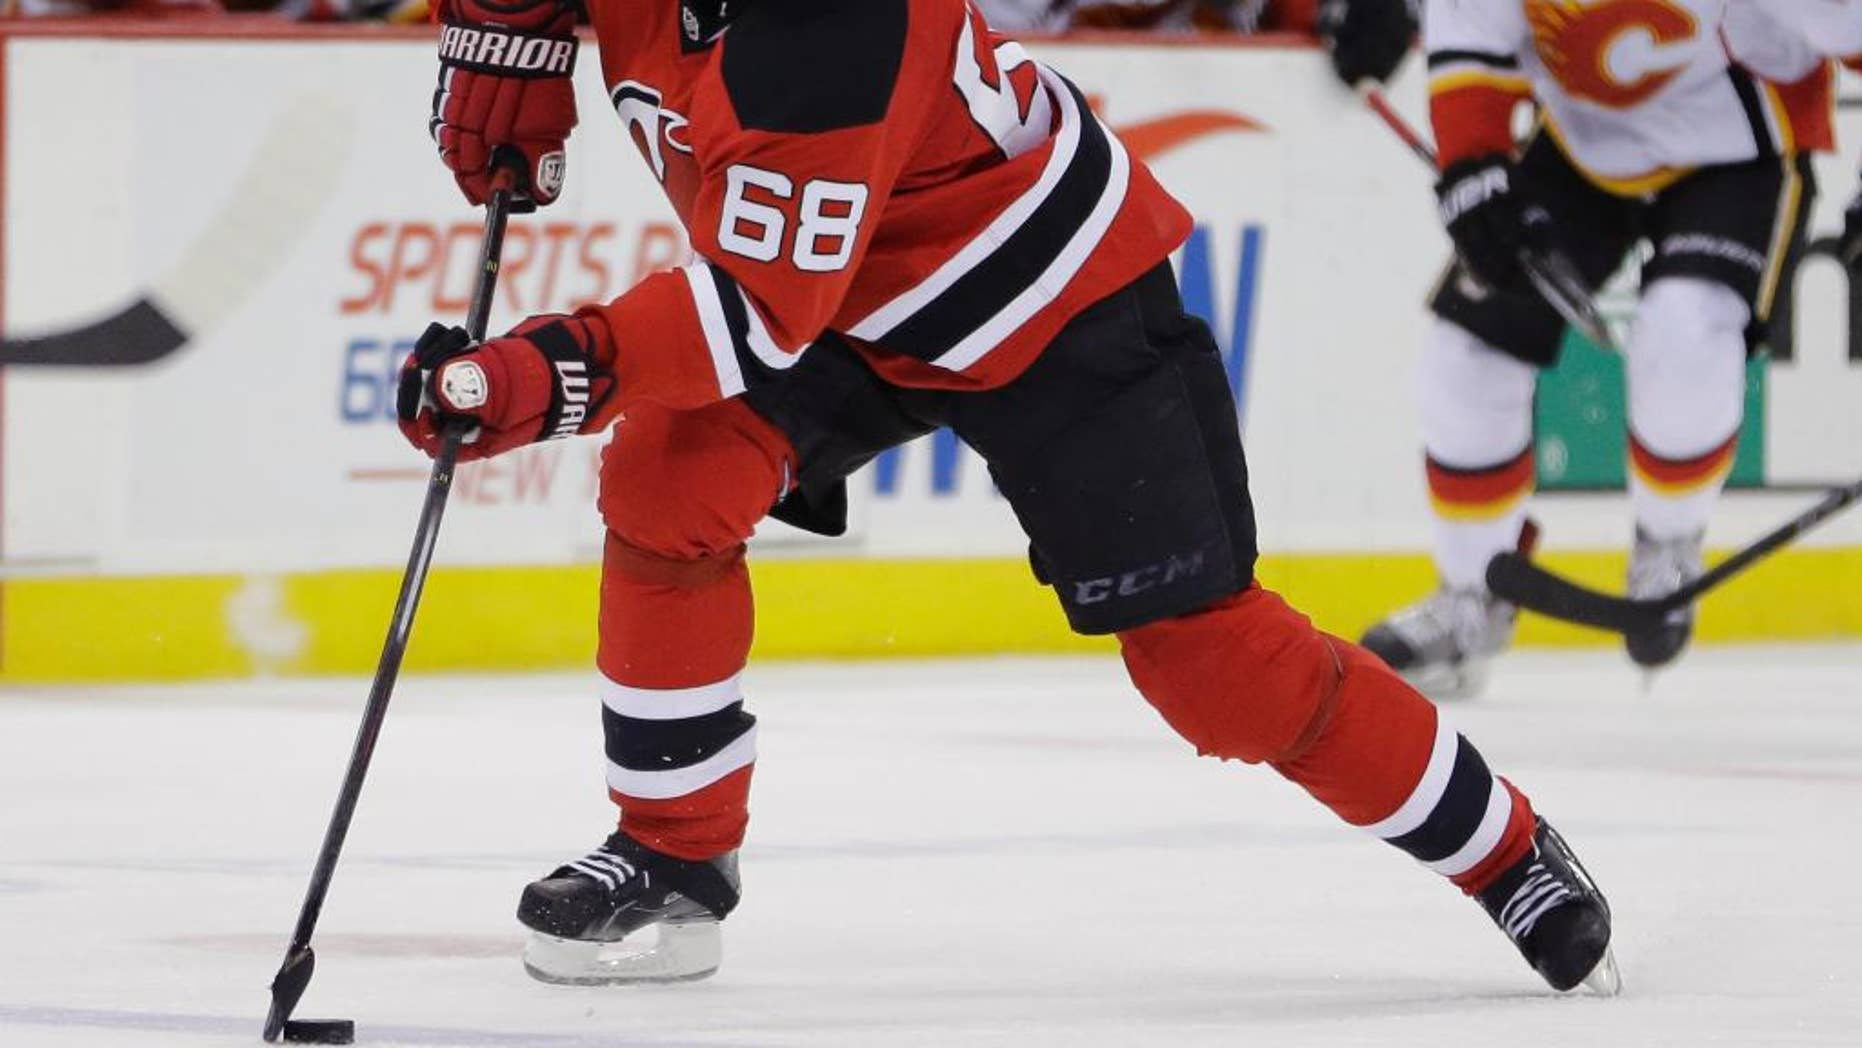 New Jersey Devils right wing Jaromir Jagr, of the Czech Republic, skates against the Calgary Flames during the second period of an NHL hockey game, Wednesday, Feb. 25, 2015, in Newark, N.J. (AP Photo/Julio Cortez)